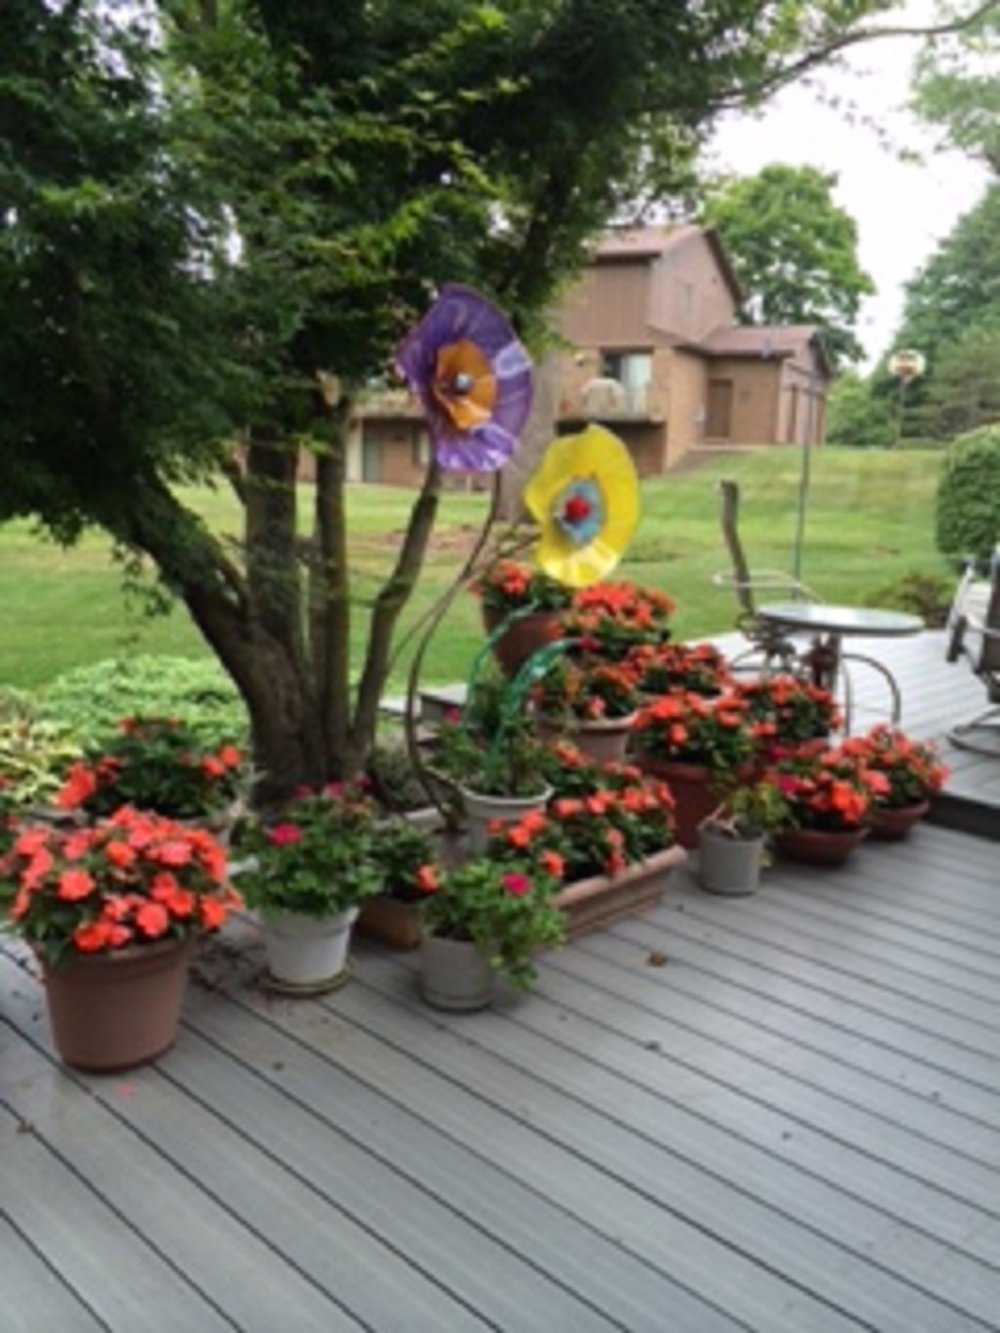 Look out your window and see these flowers that bloom all year long located in this flower garden the pieces shown are @18″ colors are purple with amber and yellow with teal the sculpture stands 69″.